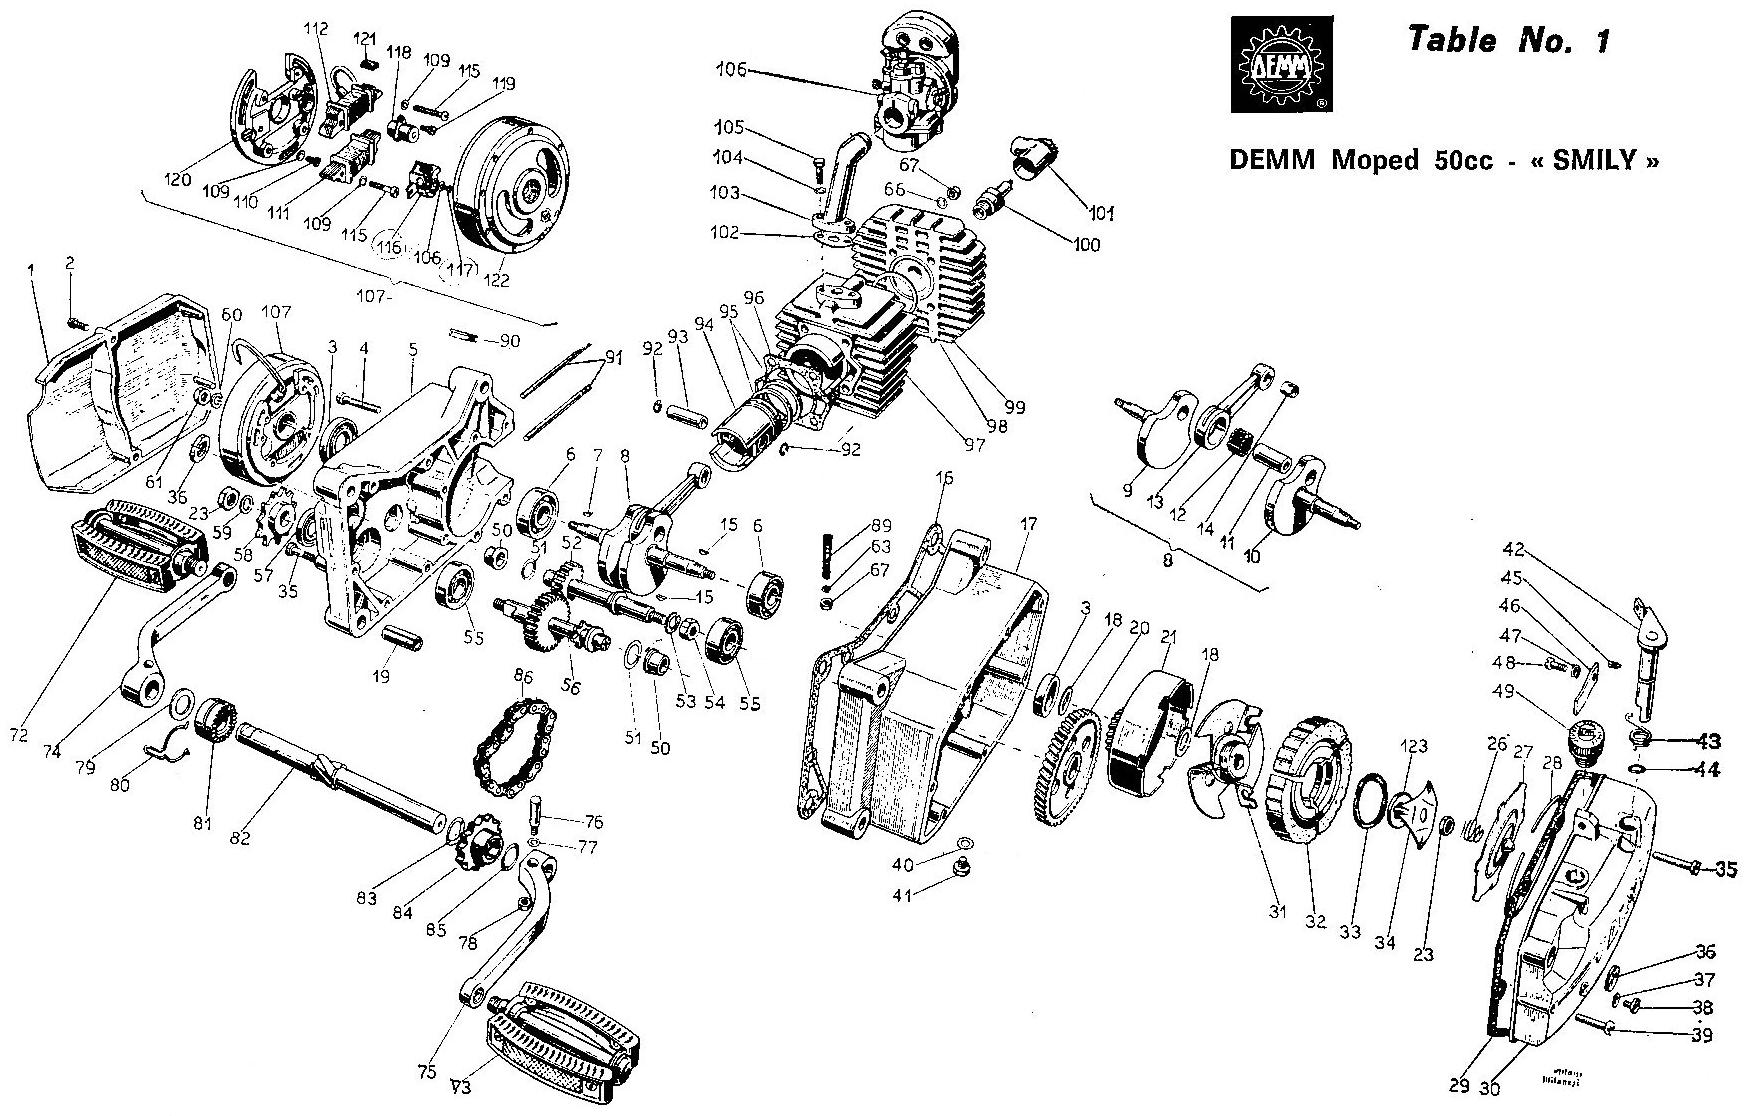 Alpha Sports Wiring Diagram in addition Sunl 50cc Atv Wiring Diagram besides 150cc Scooter Carb Diagram together with Water Cooled Carburetor 250cc Gy6 Engine Diagram moreover 90cc Go Kart Wiring Diagram. on chinese go kart wiring diagram